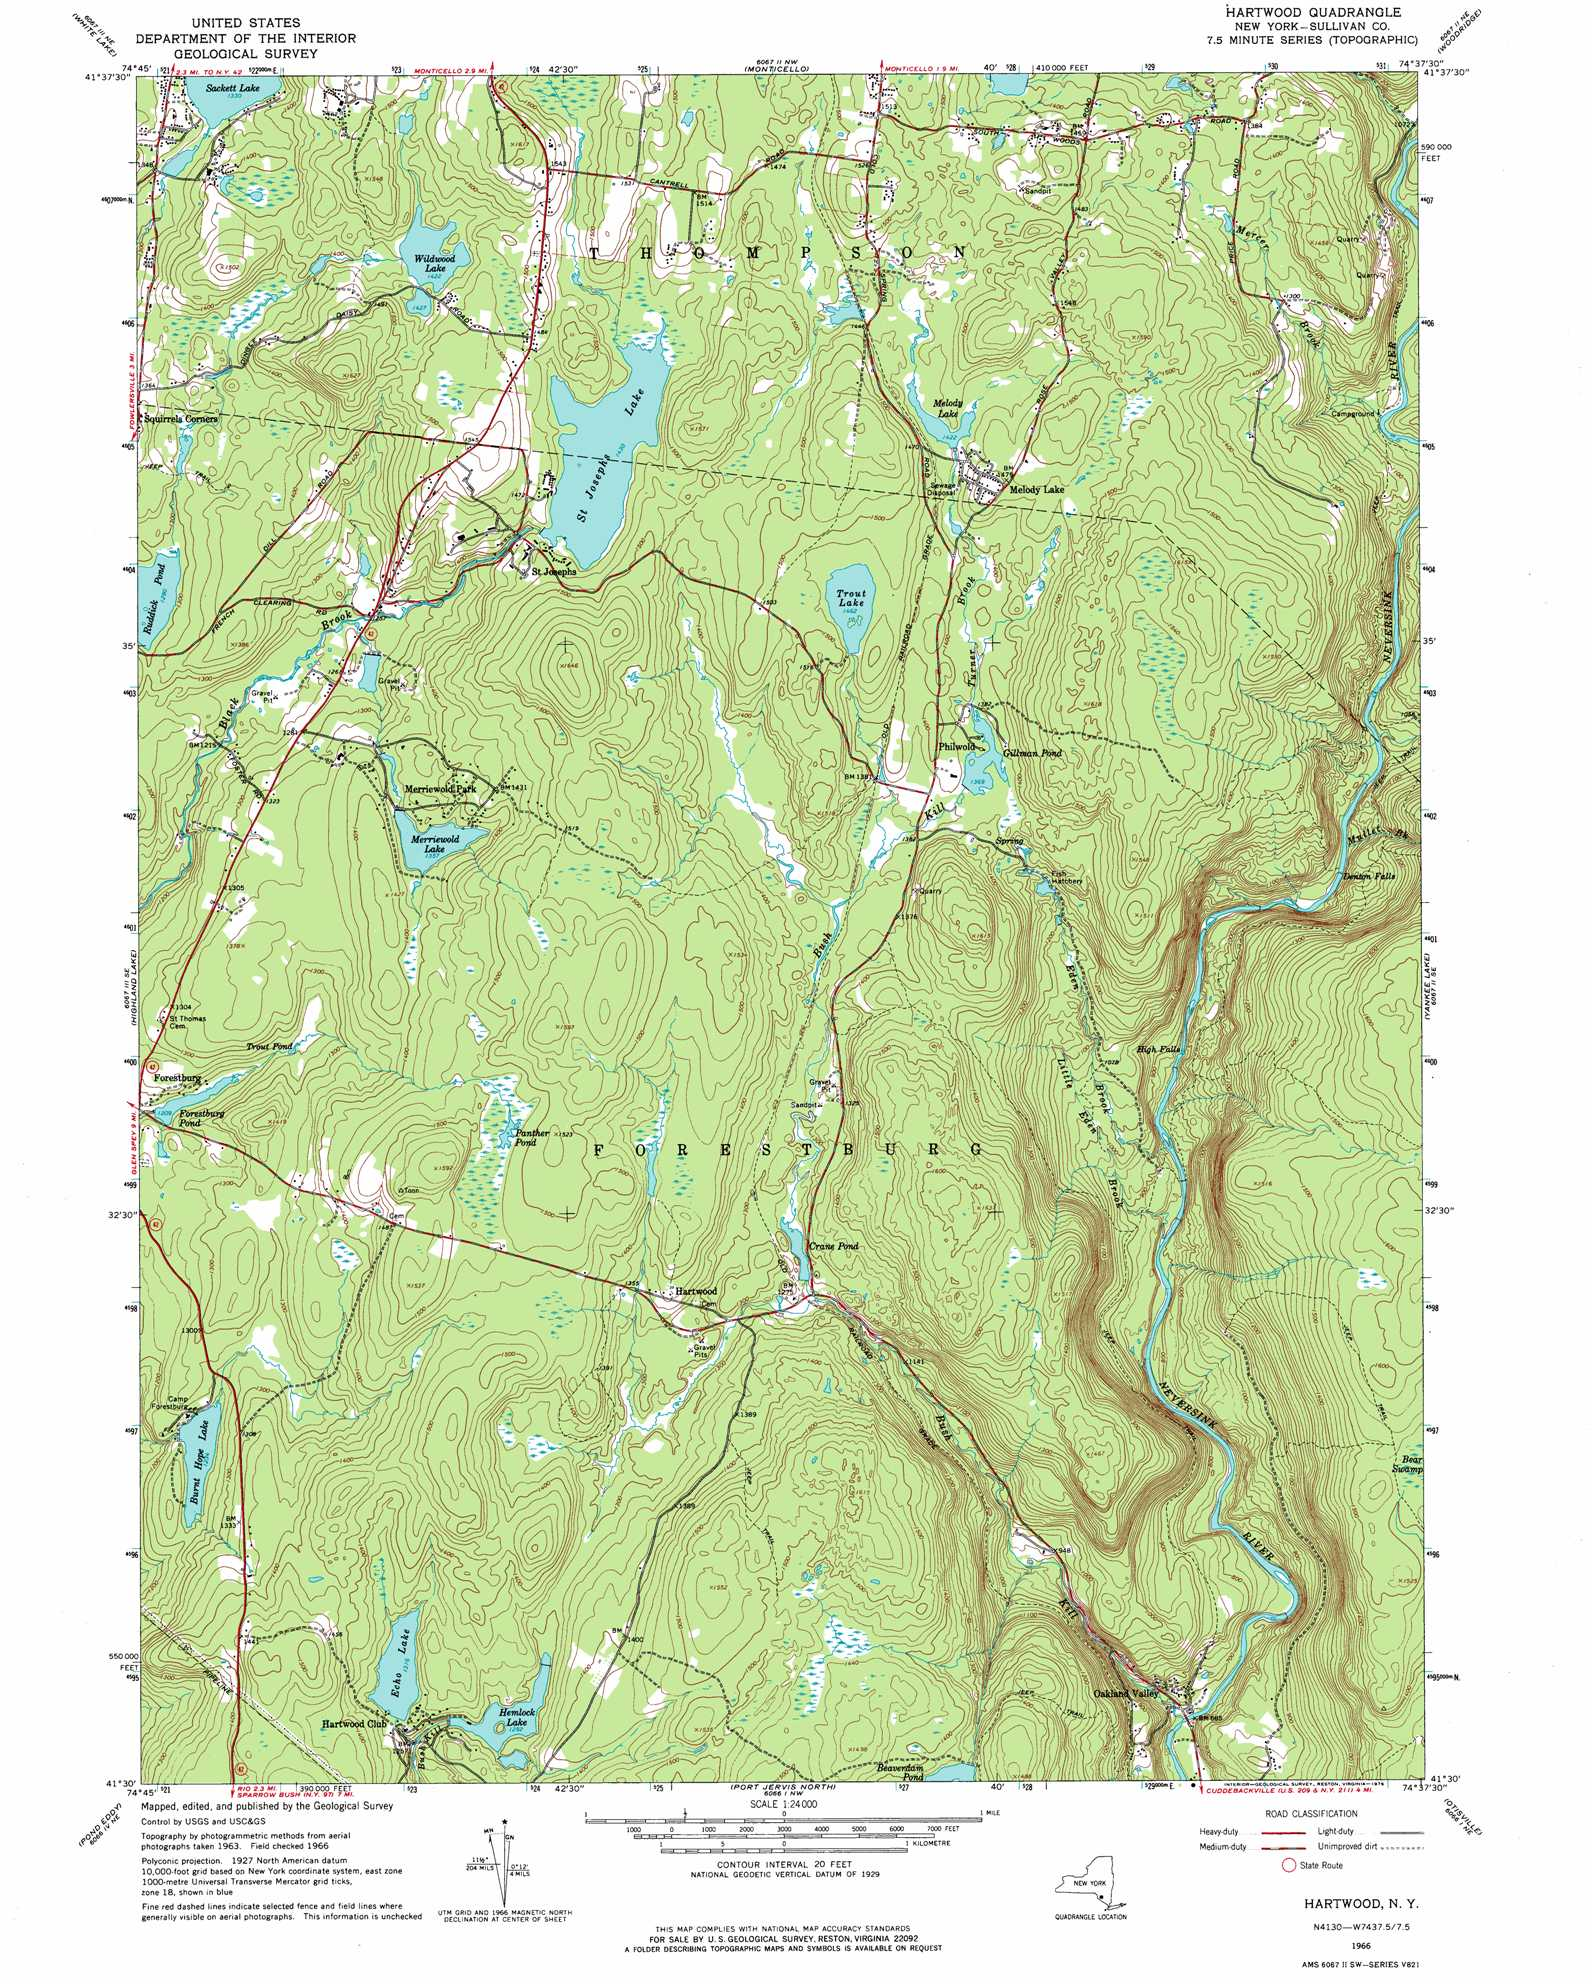 high resolution road maps with 41074e6 on Idahoroad Recreation Atlas in addition International Weekend Retreat Ybat together with Details moreover Alberta Province Map further Contact us.